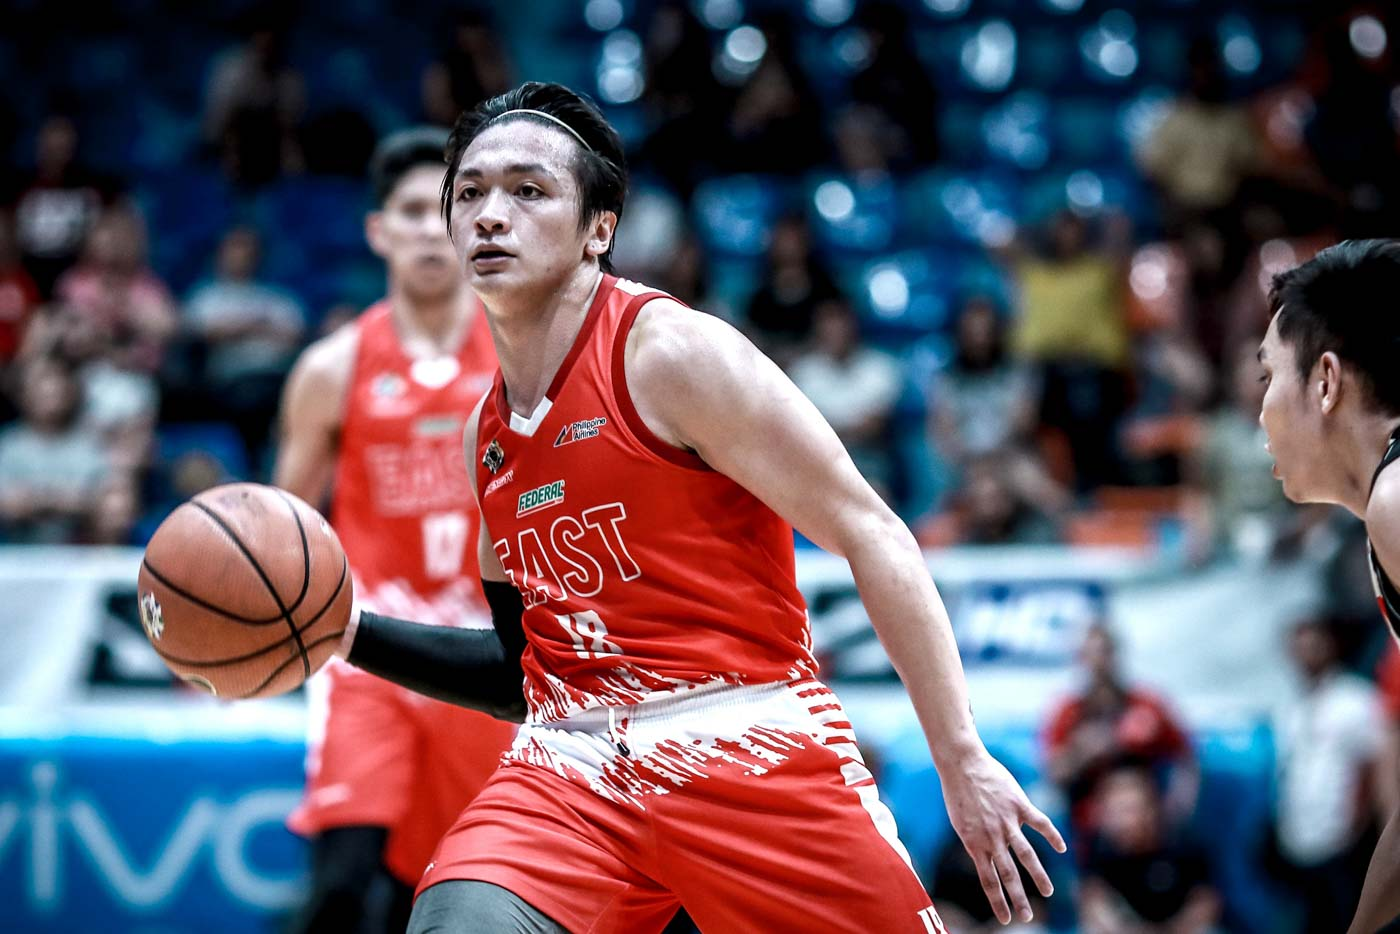 WATCH: Retooled UE Red Warriors go all-in for Final Four bid